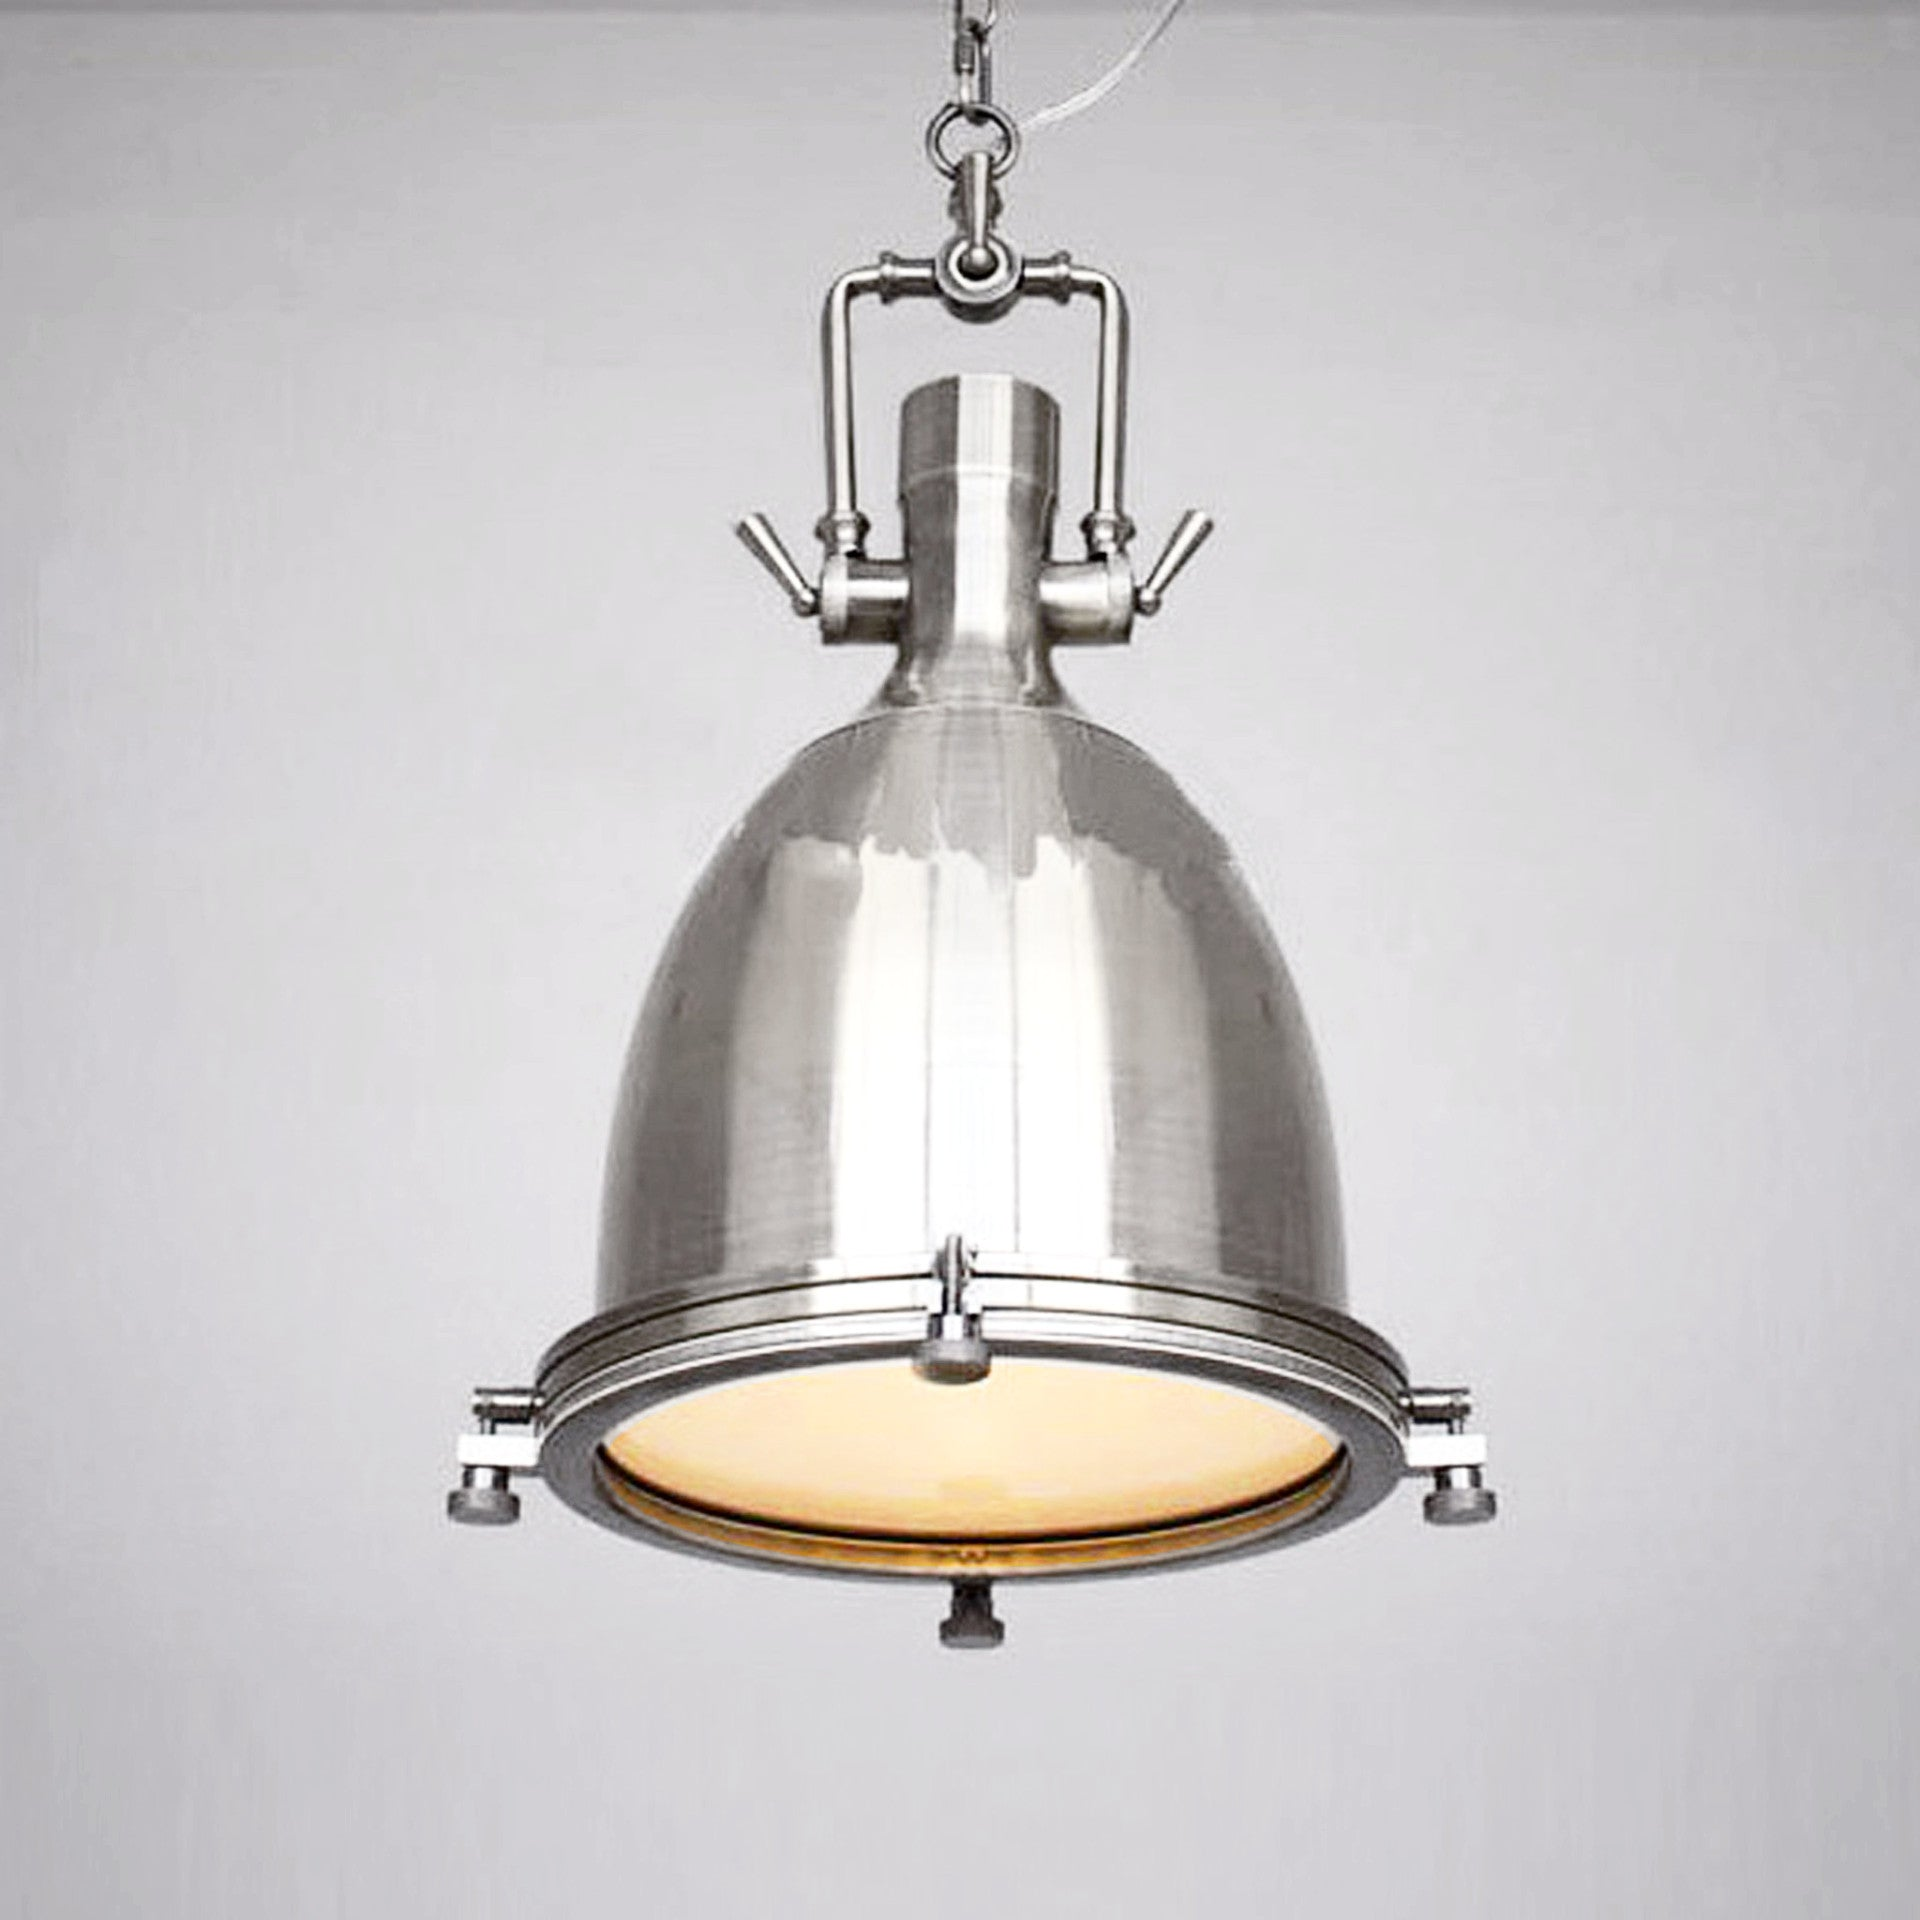 new product 93a8b acce4 Vintage brushed steel Pendant lamp BP0903 CY-DD-089